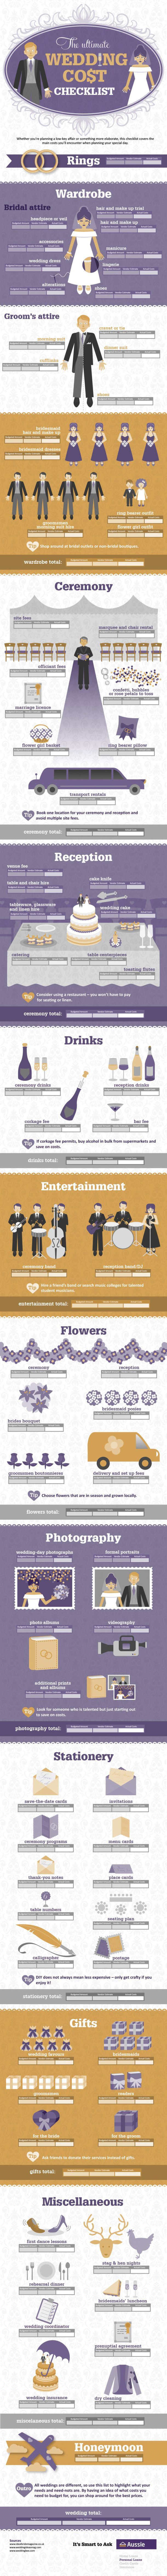 the ultimate wedding cost checklist!! so useful!